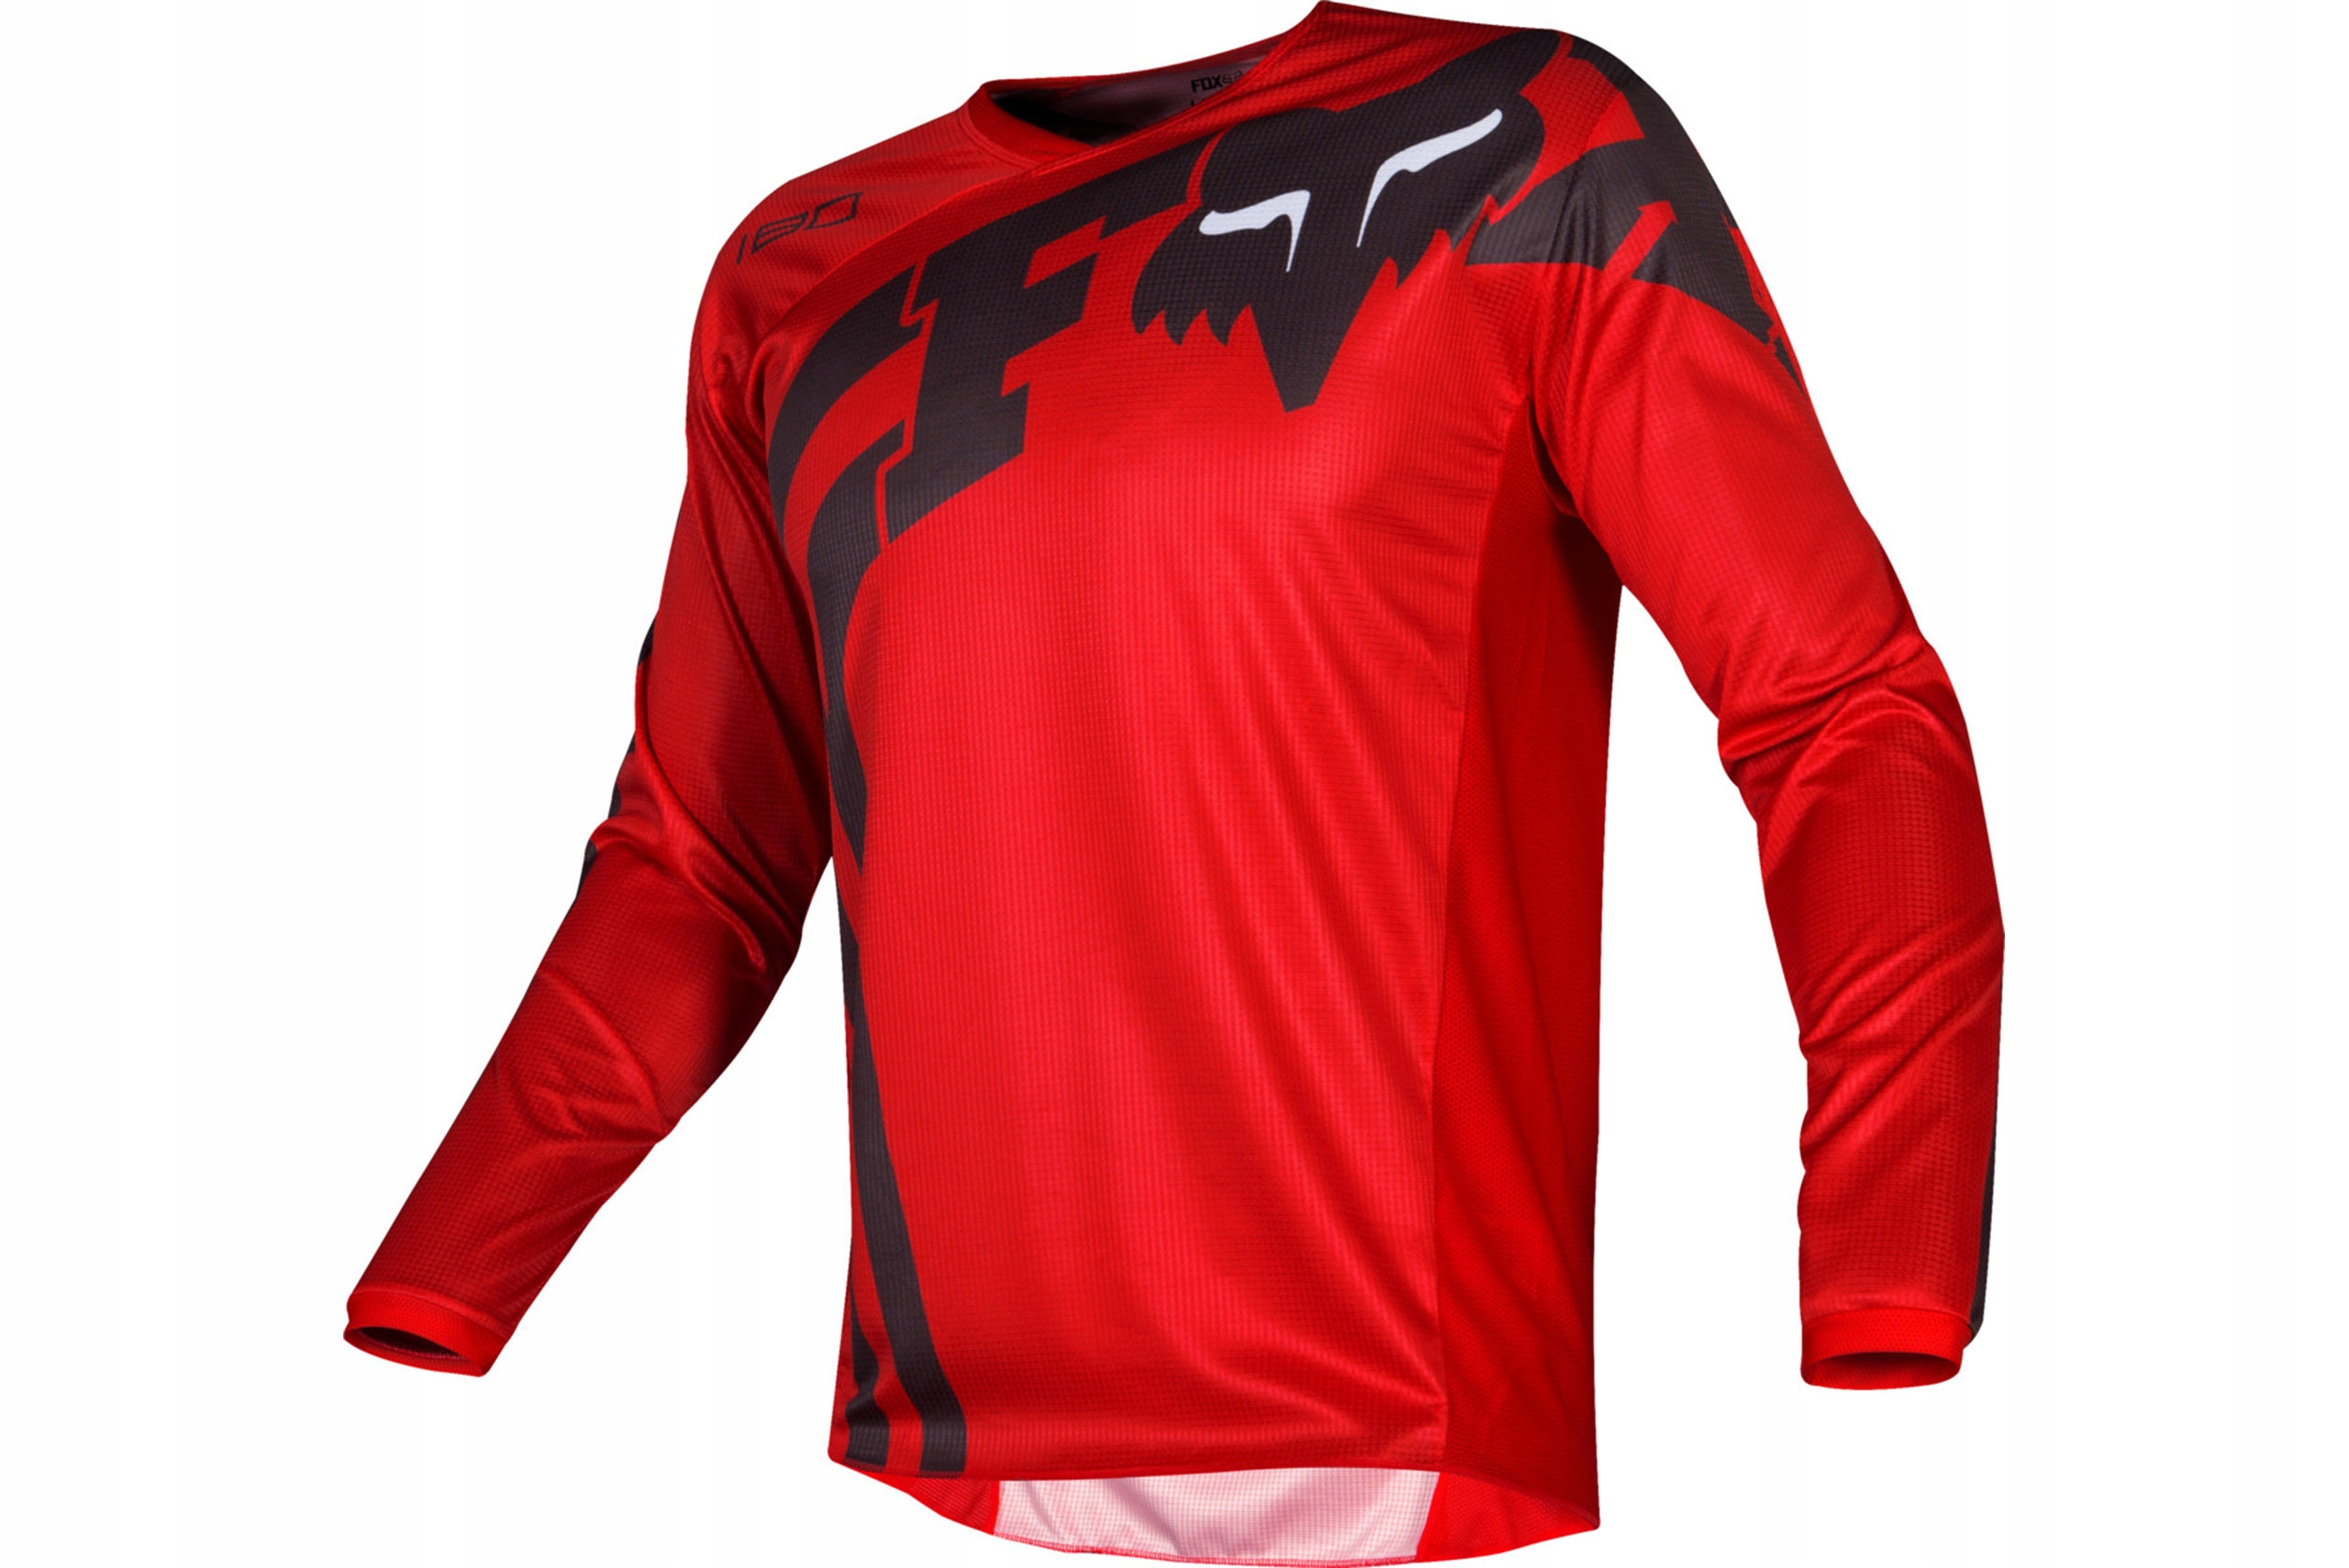 BLUZA KOSZULKA FOX JUNIOR 180 COTA RED YM CROSS